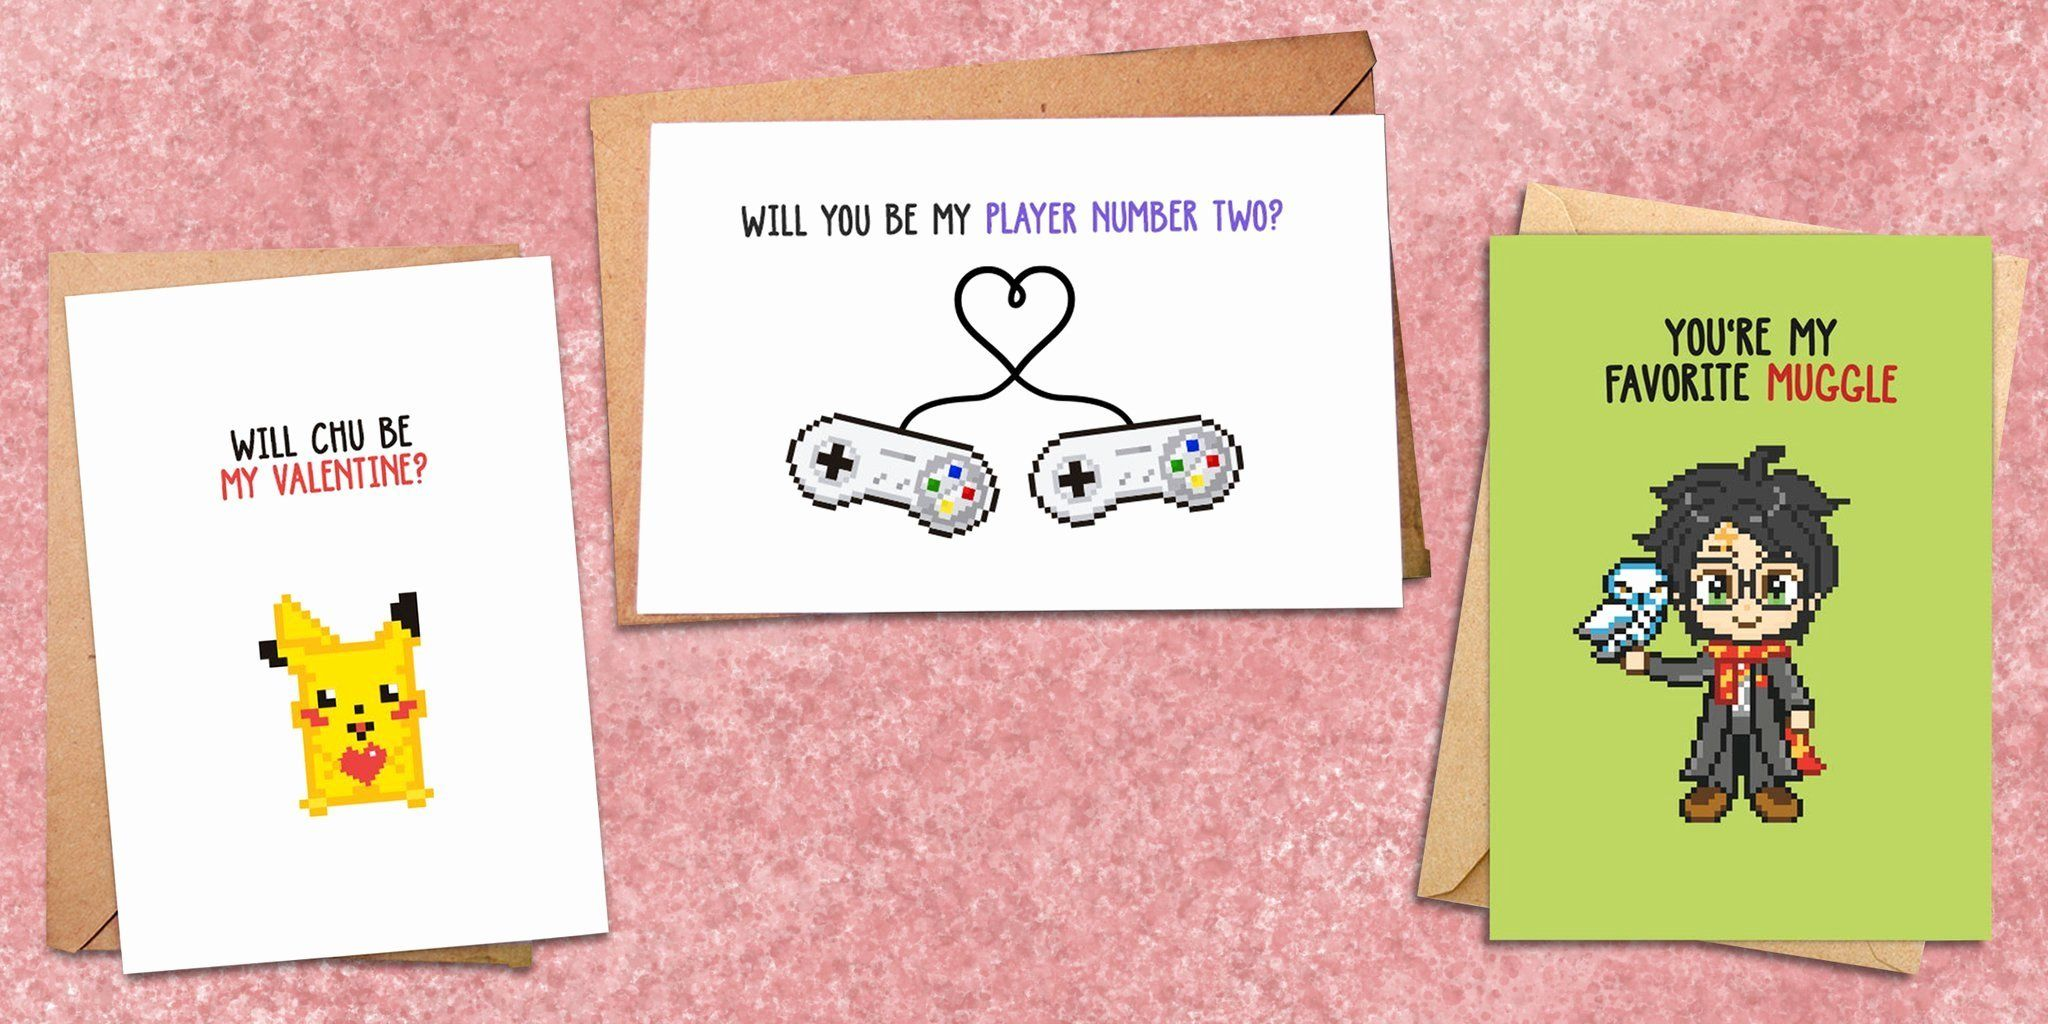 My Online Valentine Beautiful Thrill Your Valentine With These Preciously Nerdy Cards Valentines Card Design Cute Valentines Card Nerdy Cards